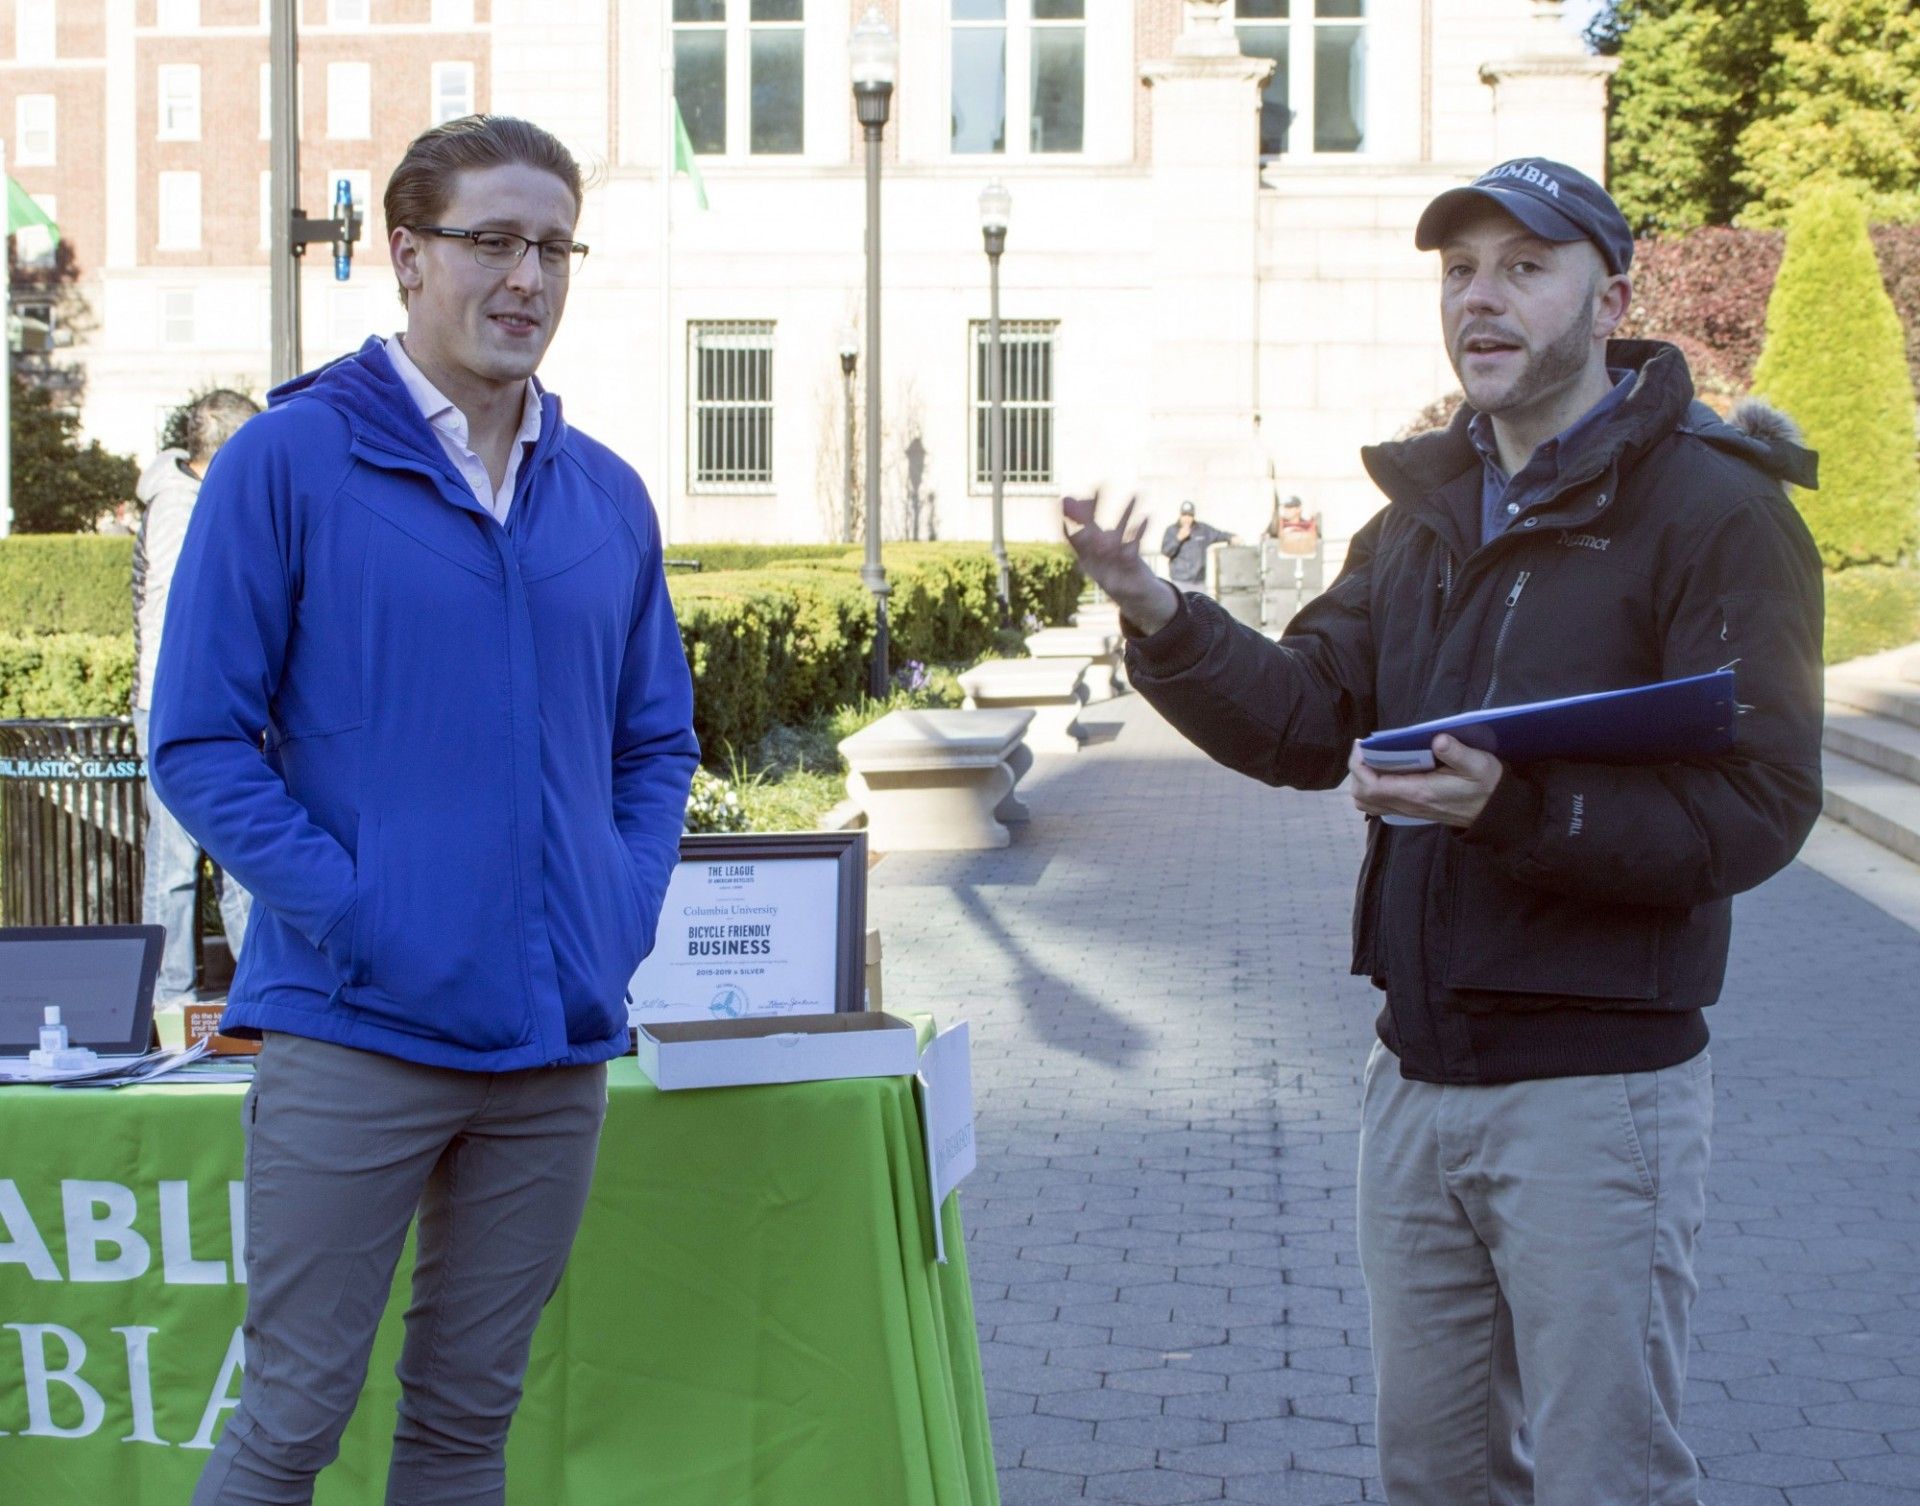 Steve Sholdra (left) receives a Sustainable Commuter award from Dan Allalemdjian at the 2018 Bike Recognition Breakfast